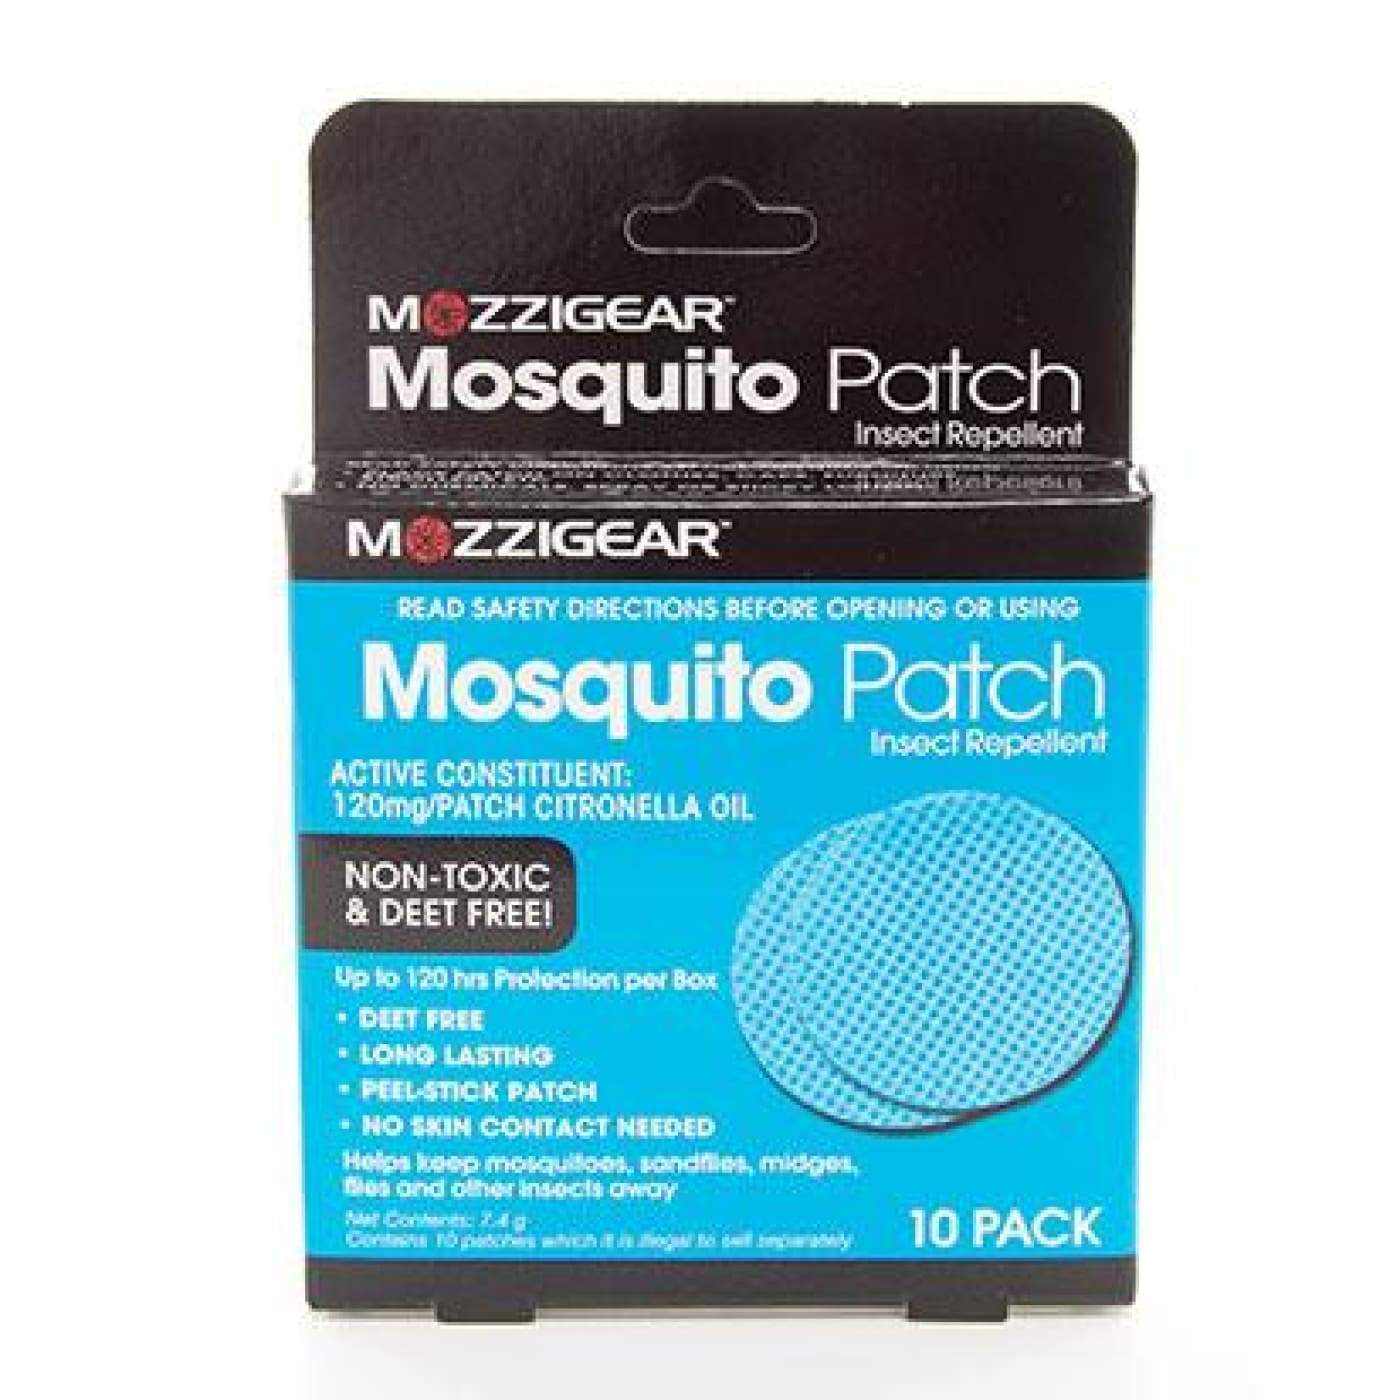 Mozzi Gear Mosquito Patch 10PK - ON THE GO - INSECT REPELLENT